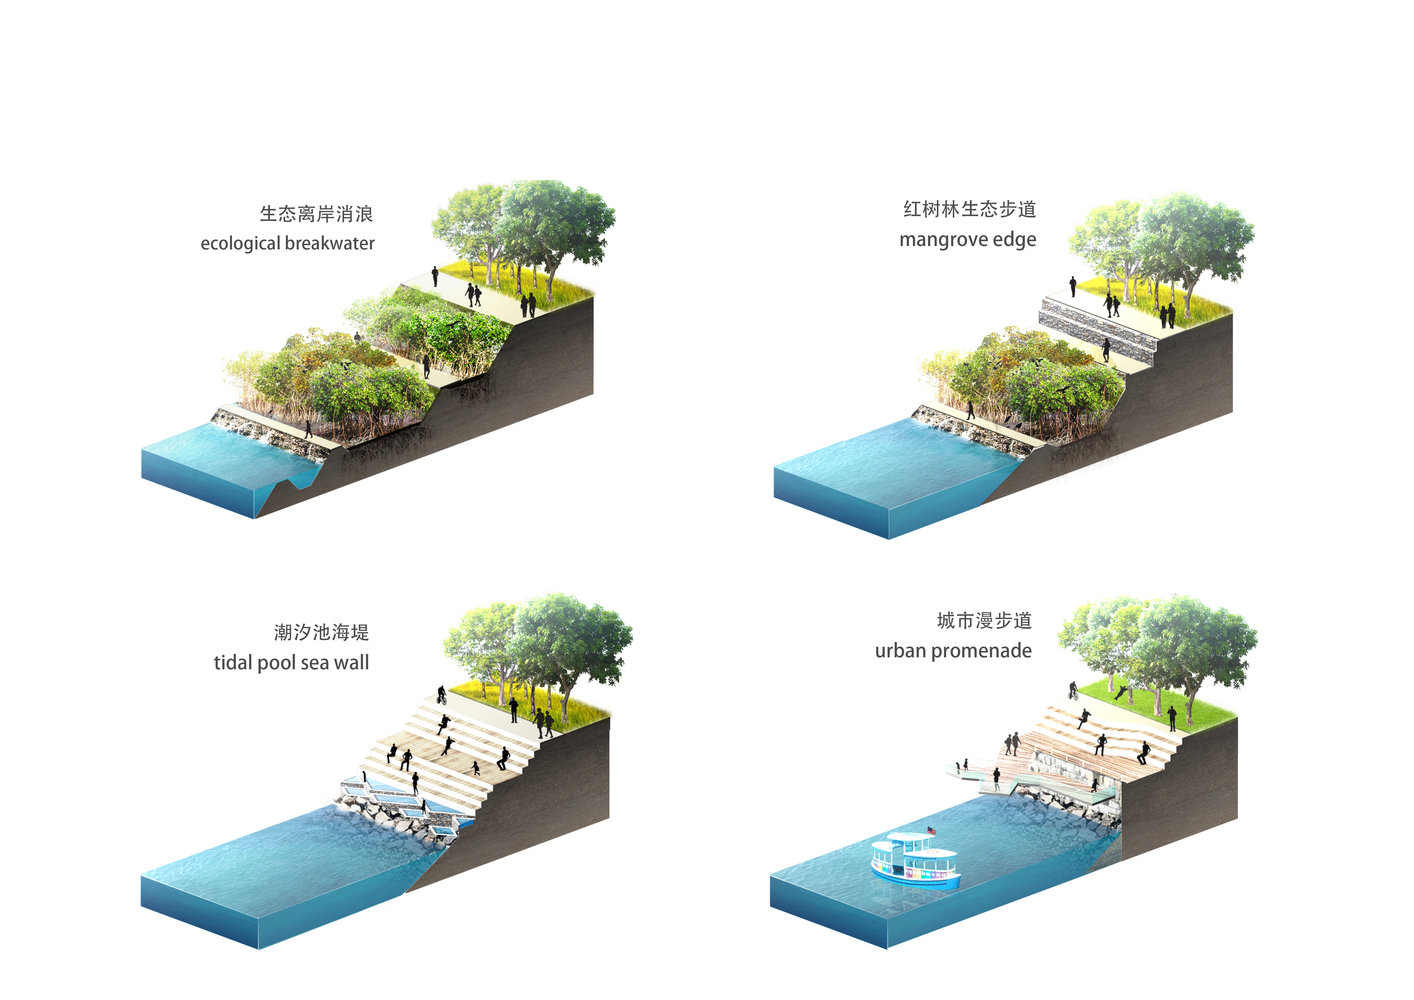 hight resolution of sasaki s forest city master plan in iskandar malaysia stretches across 4 islands section